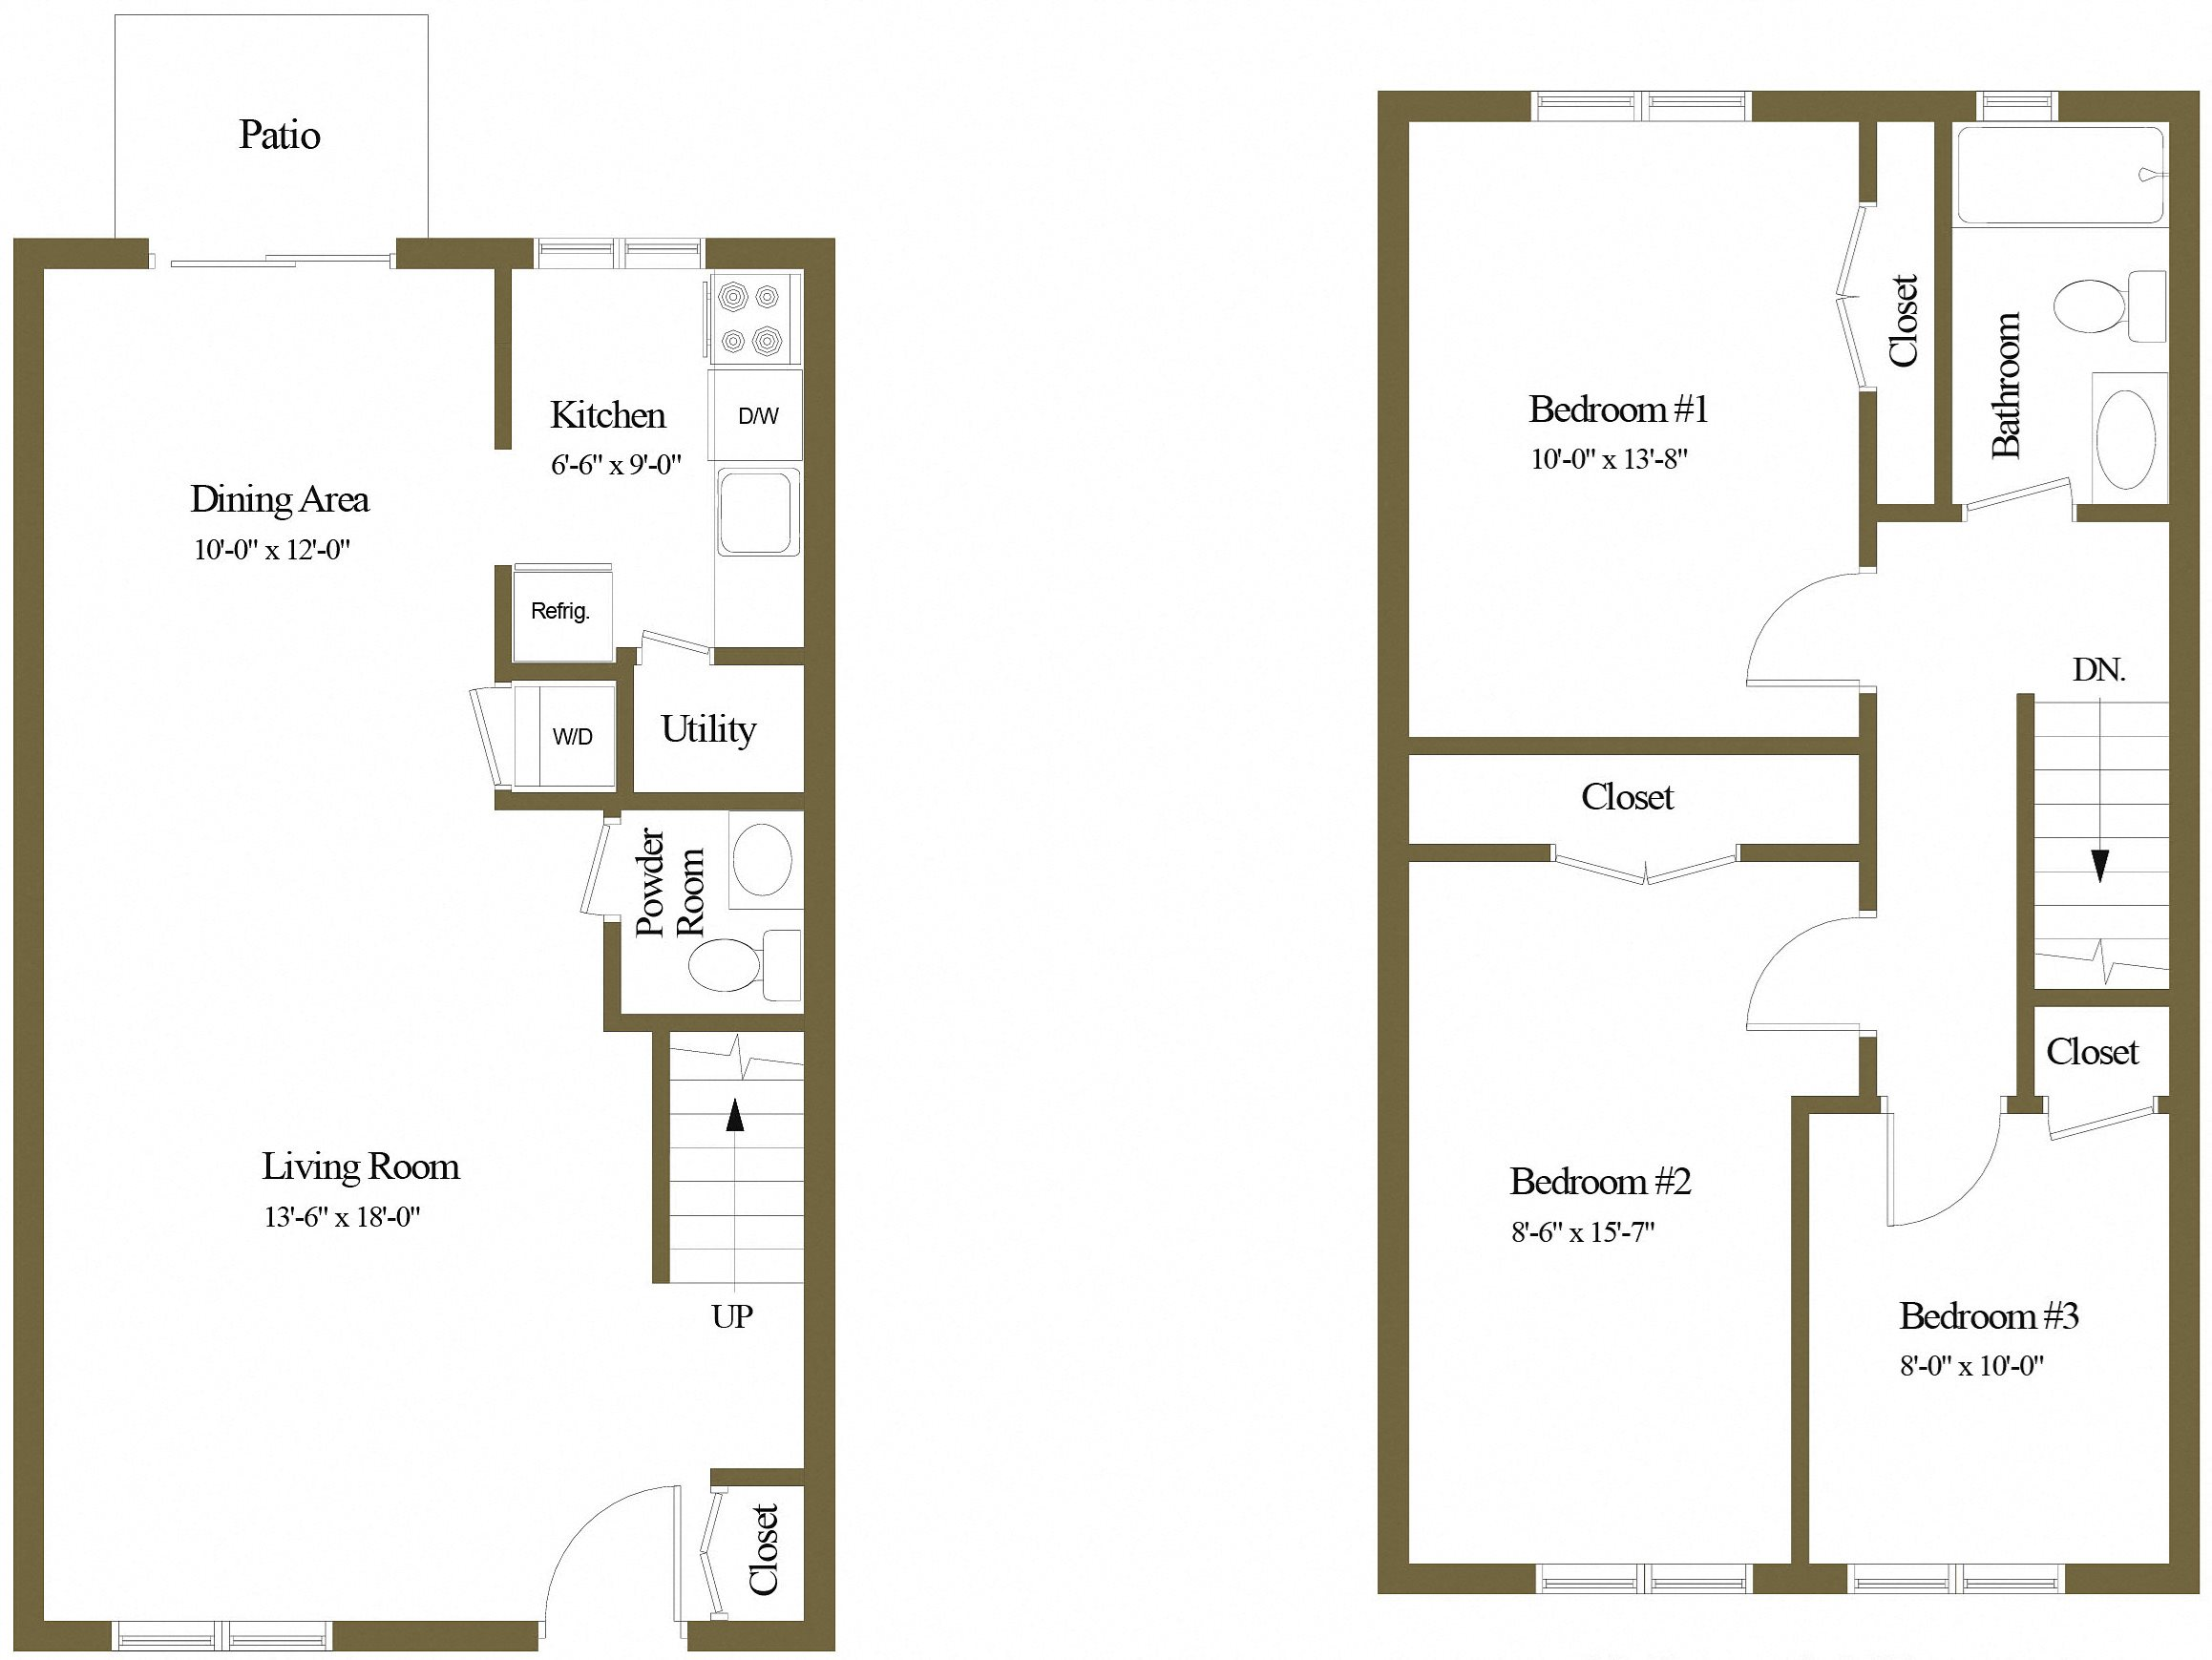 3 Bedrooms 1.5 Bath Townhome Floor Plan 5